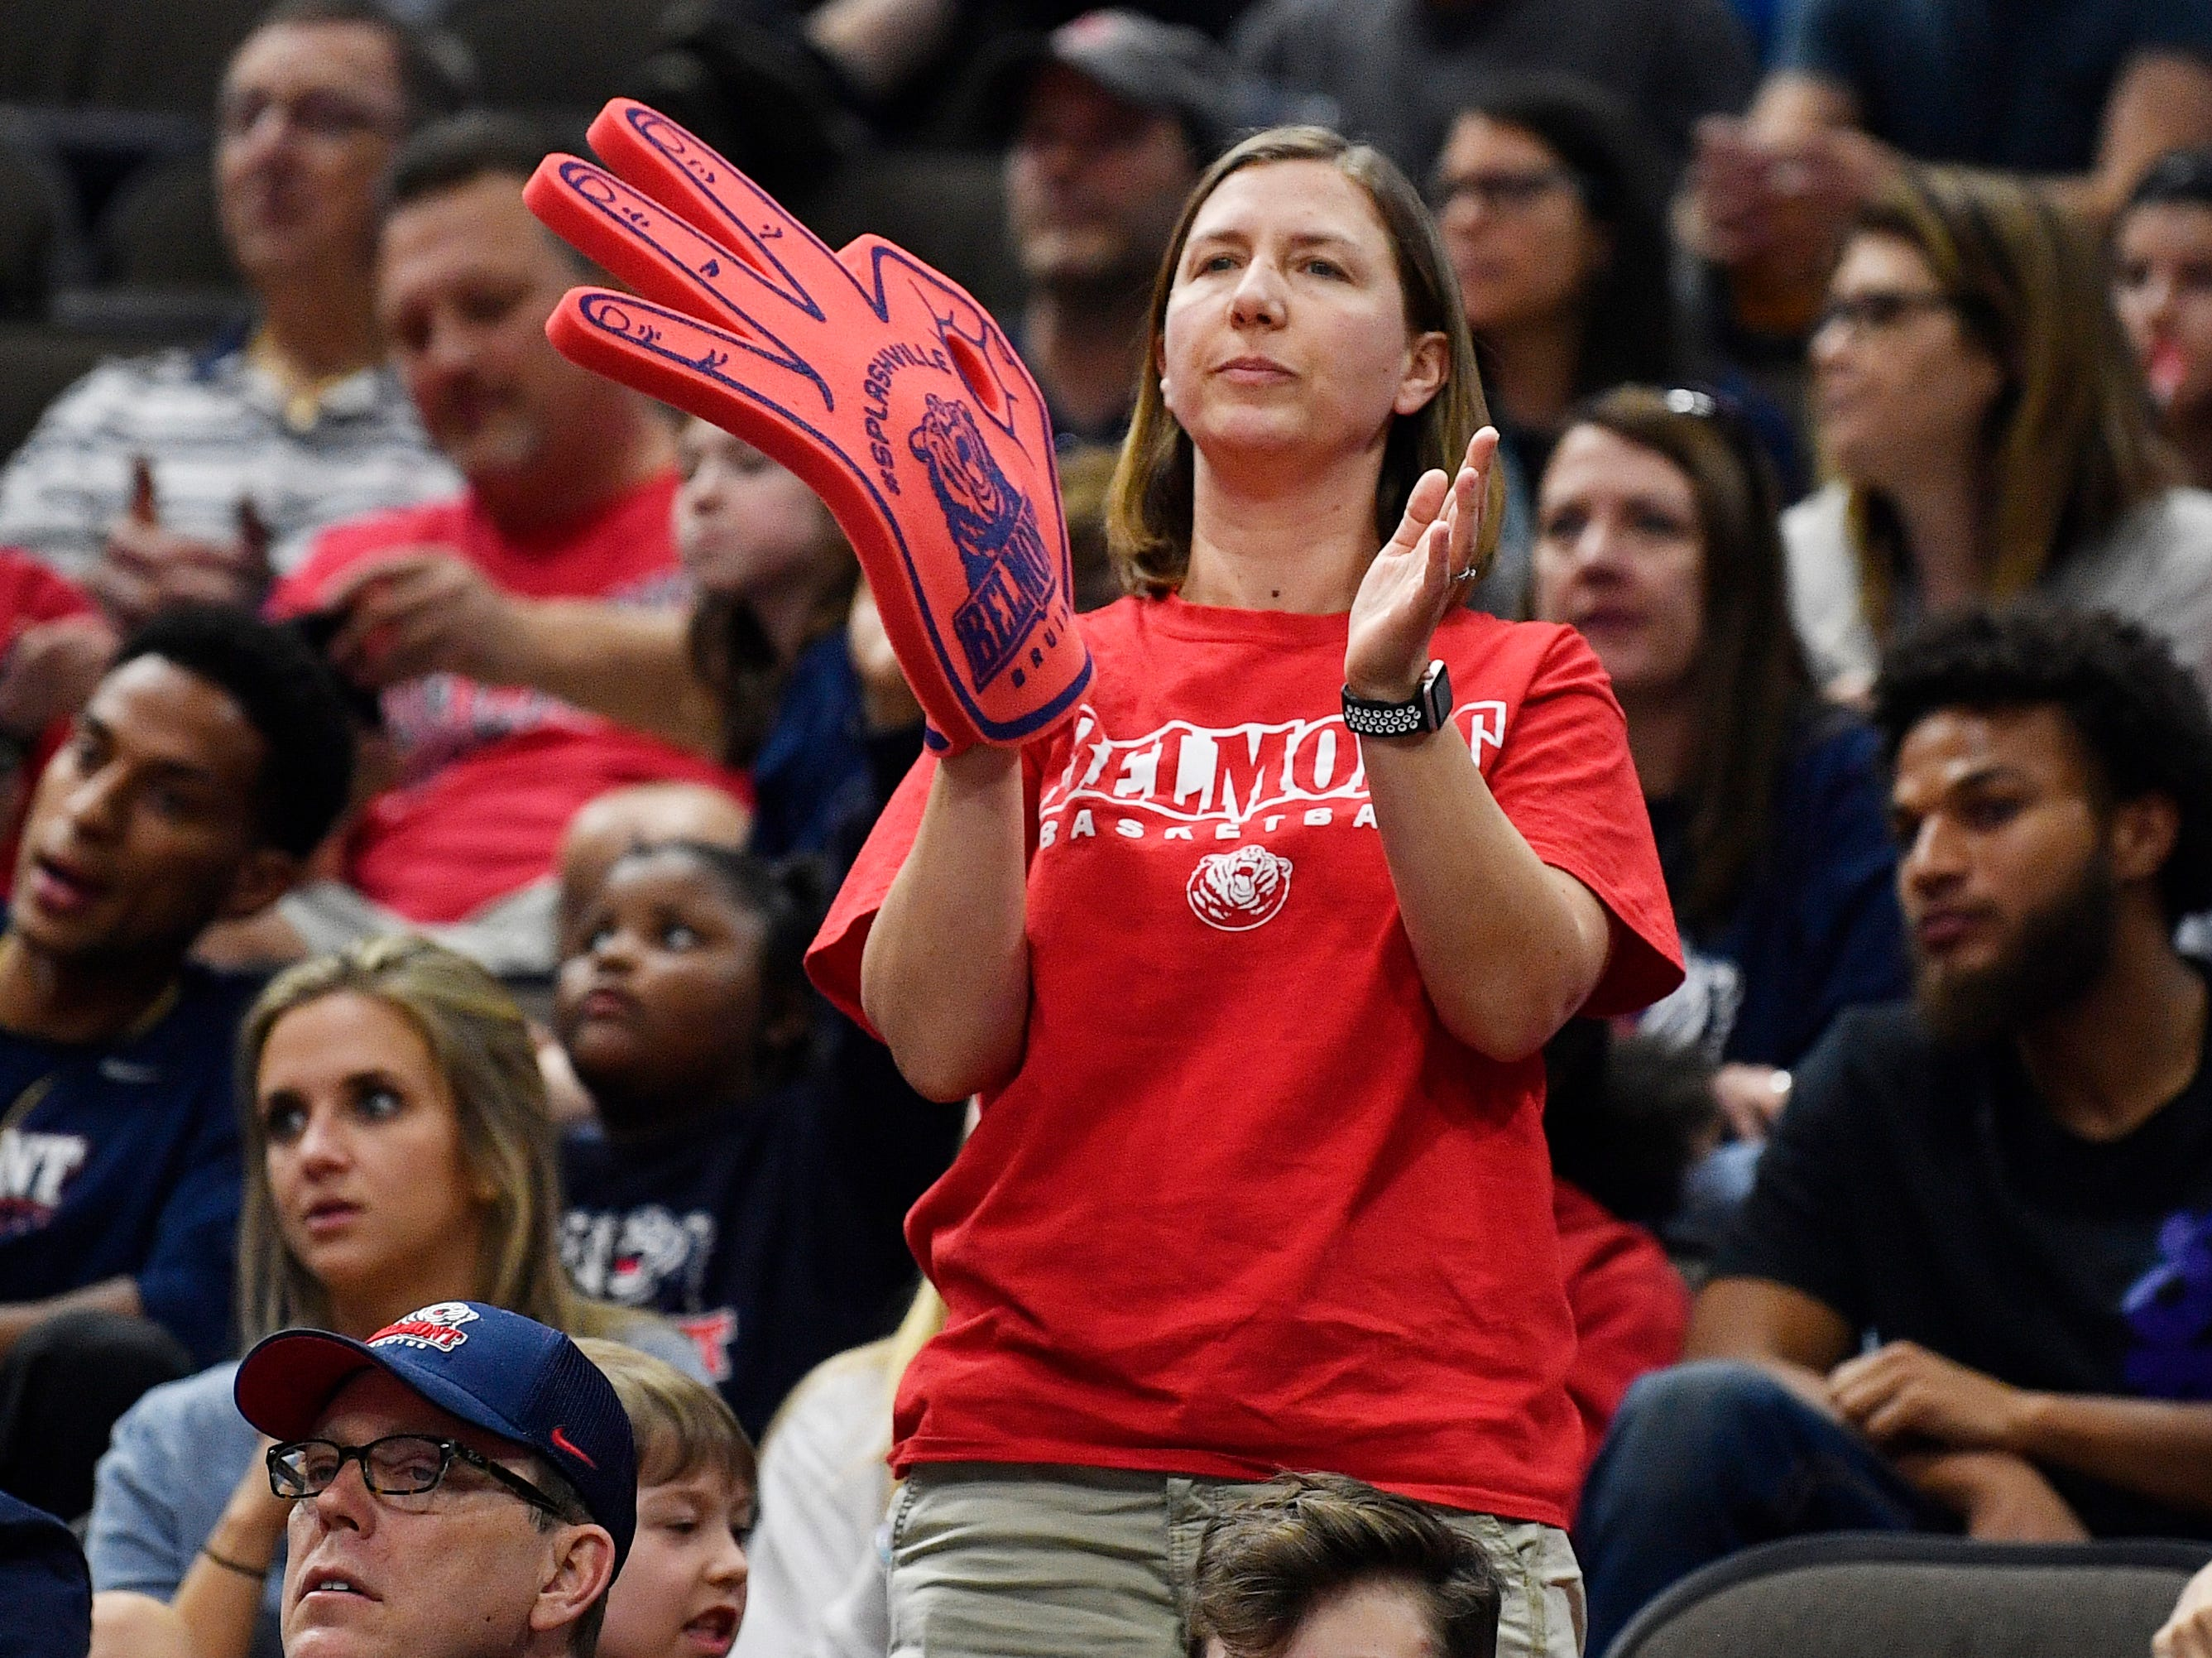 Belmont fans cheer during the second half of the first-round NCAA college basketball tournament game against Maryland at VyStar Veterans Memorial Arena in Jacksonville, Fla., Thursday, March 21, 2019.